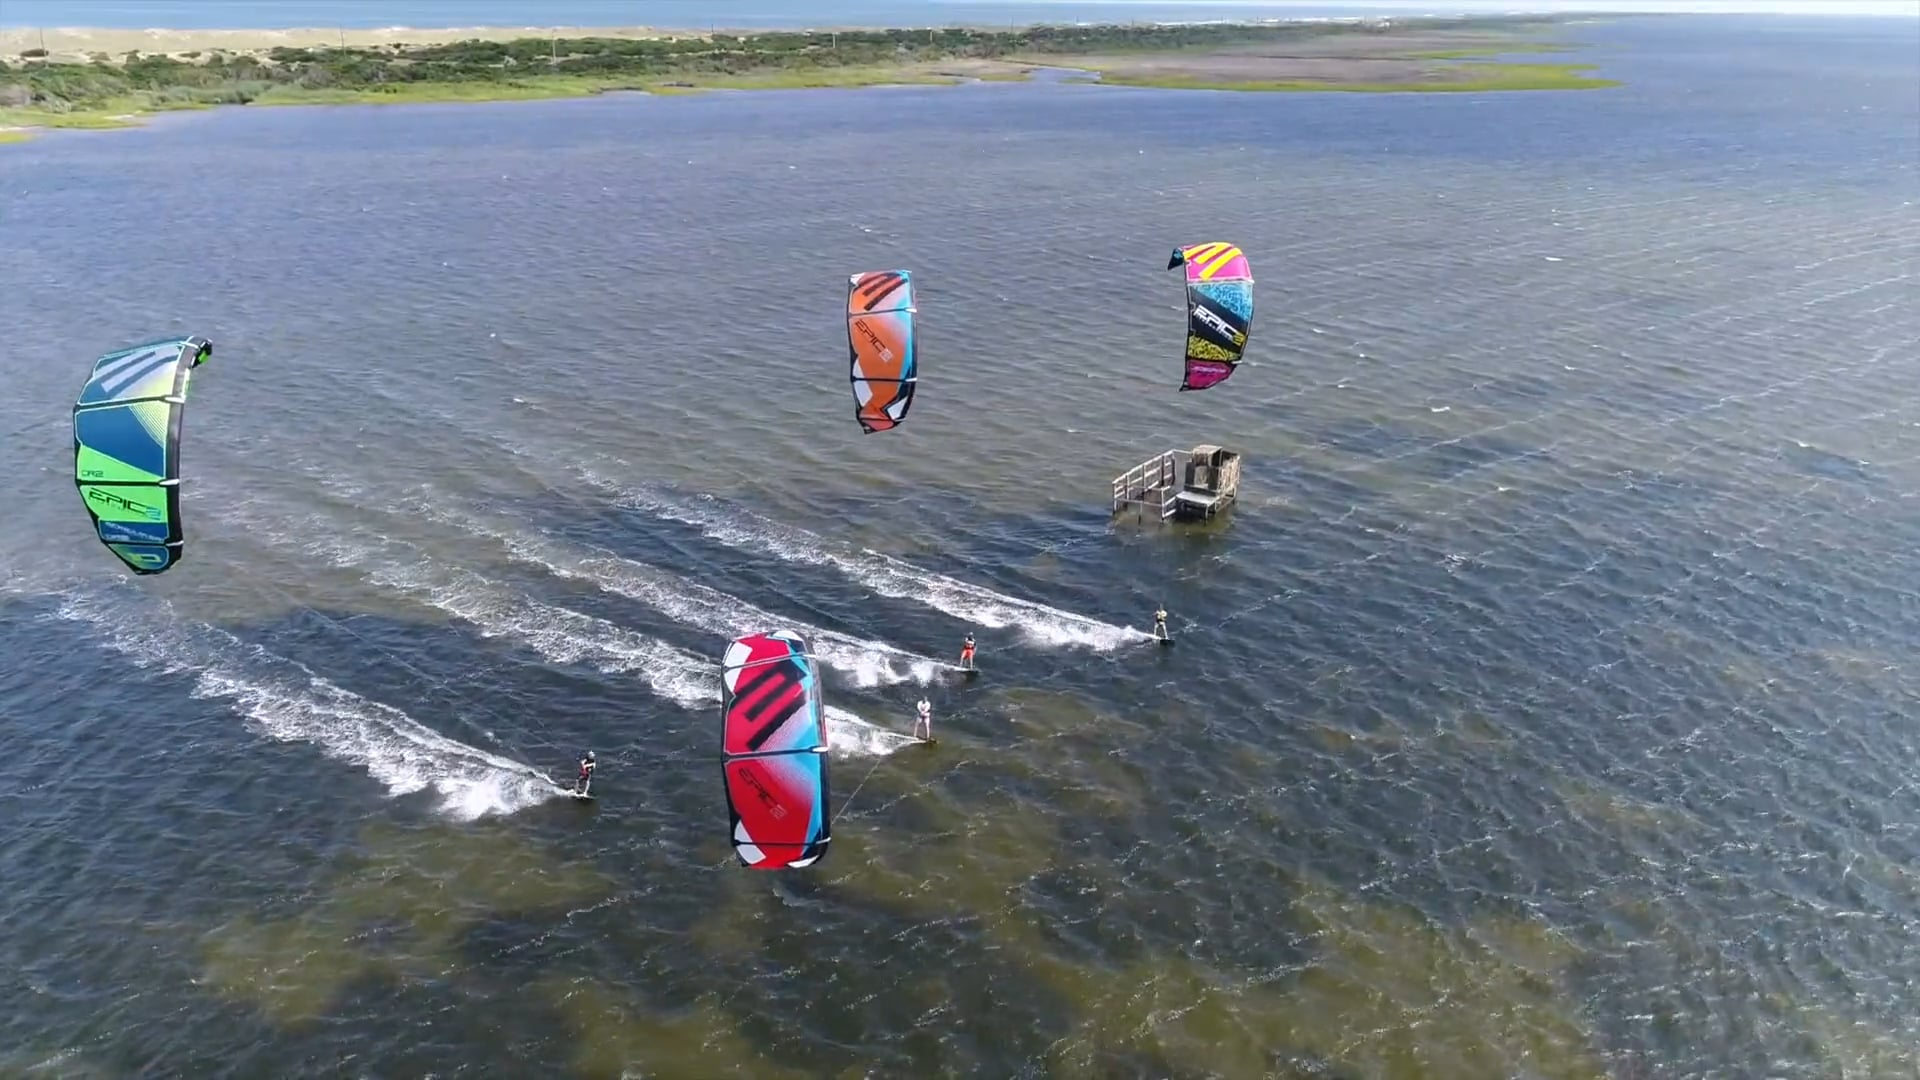 Cameron Boot Camp - with Epic Kites Kiteboarding